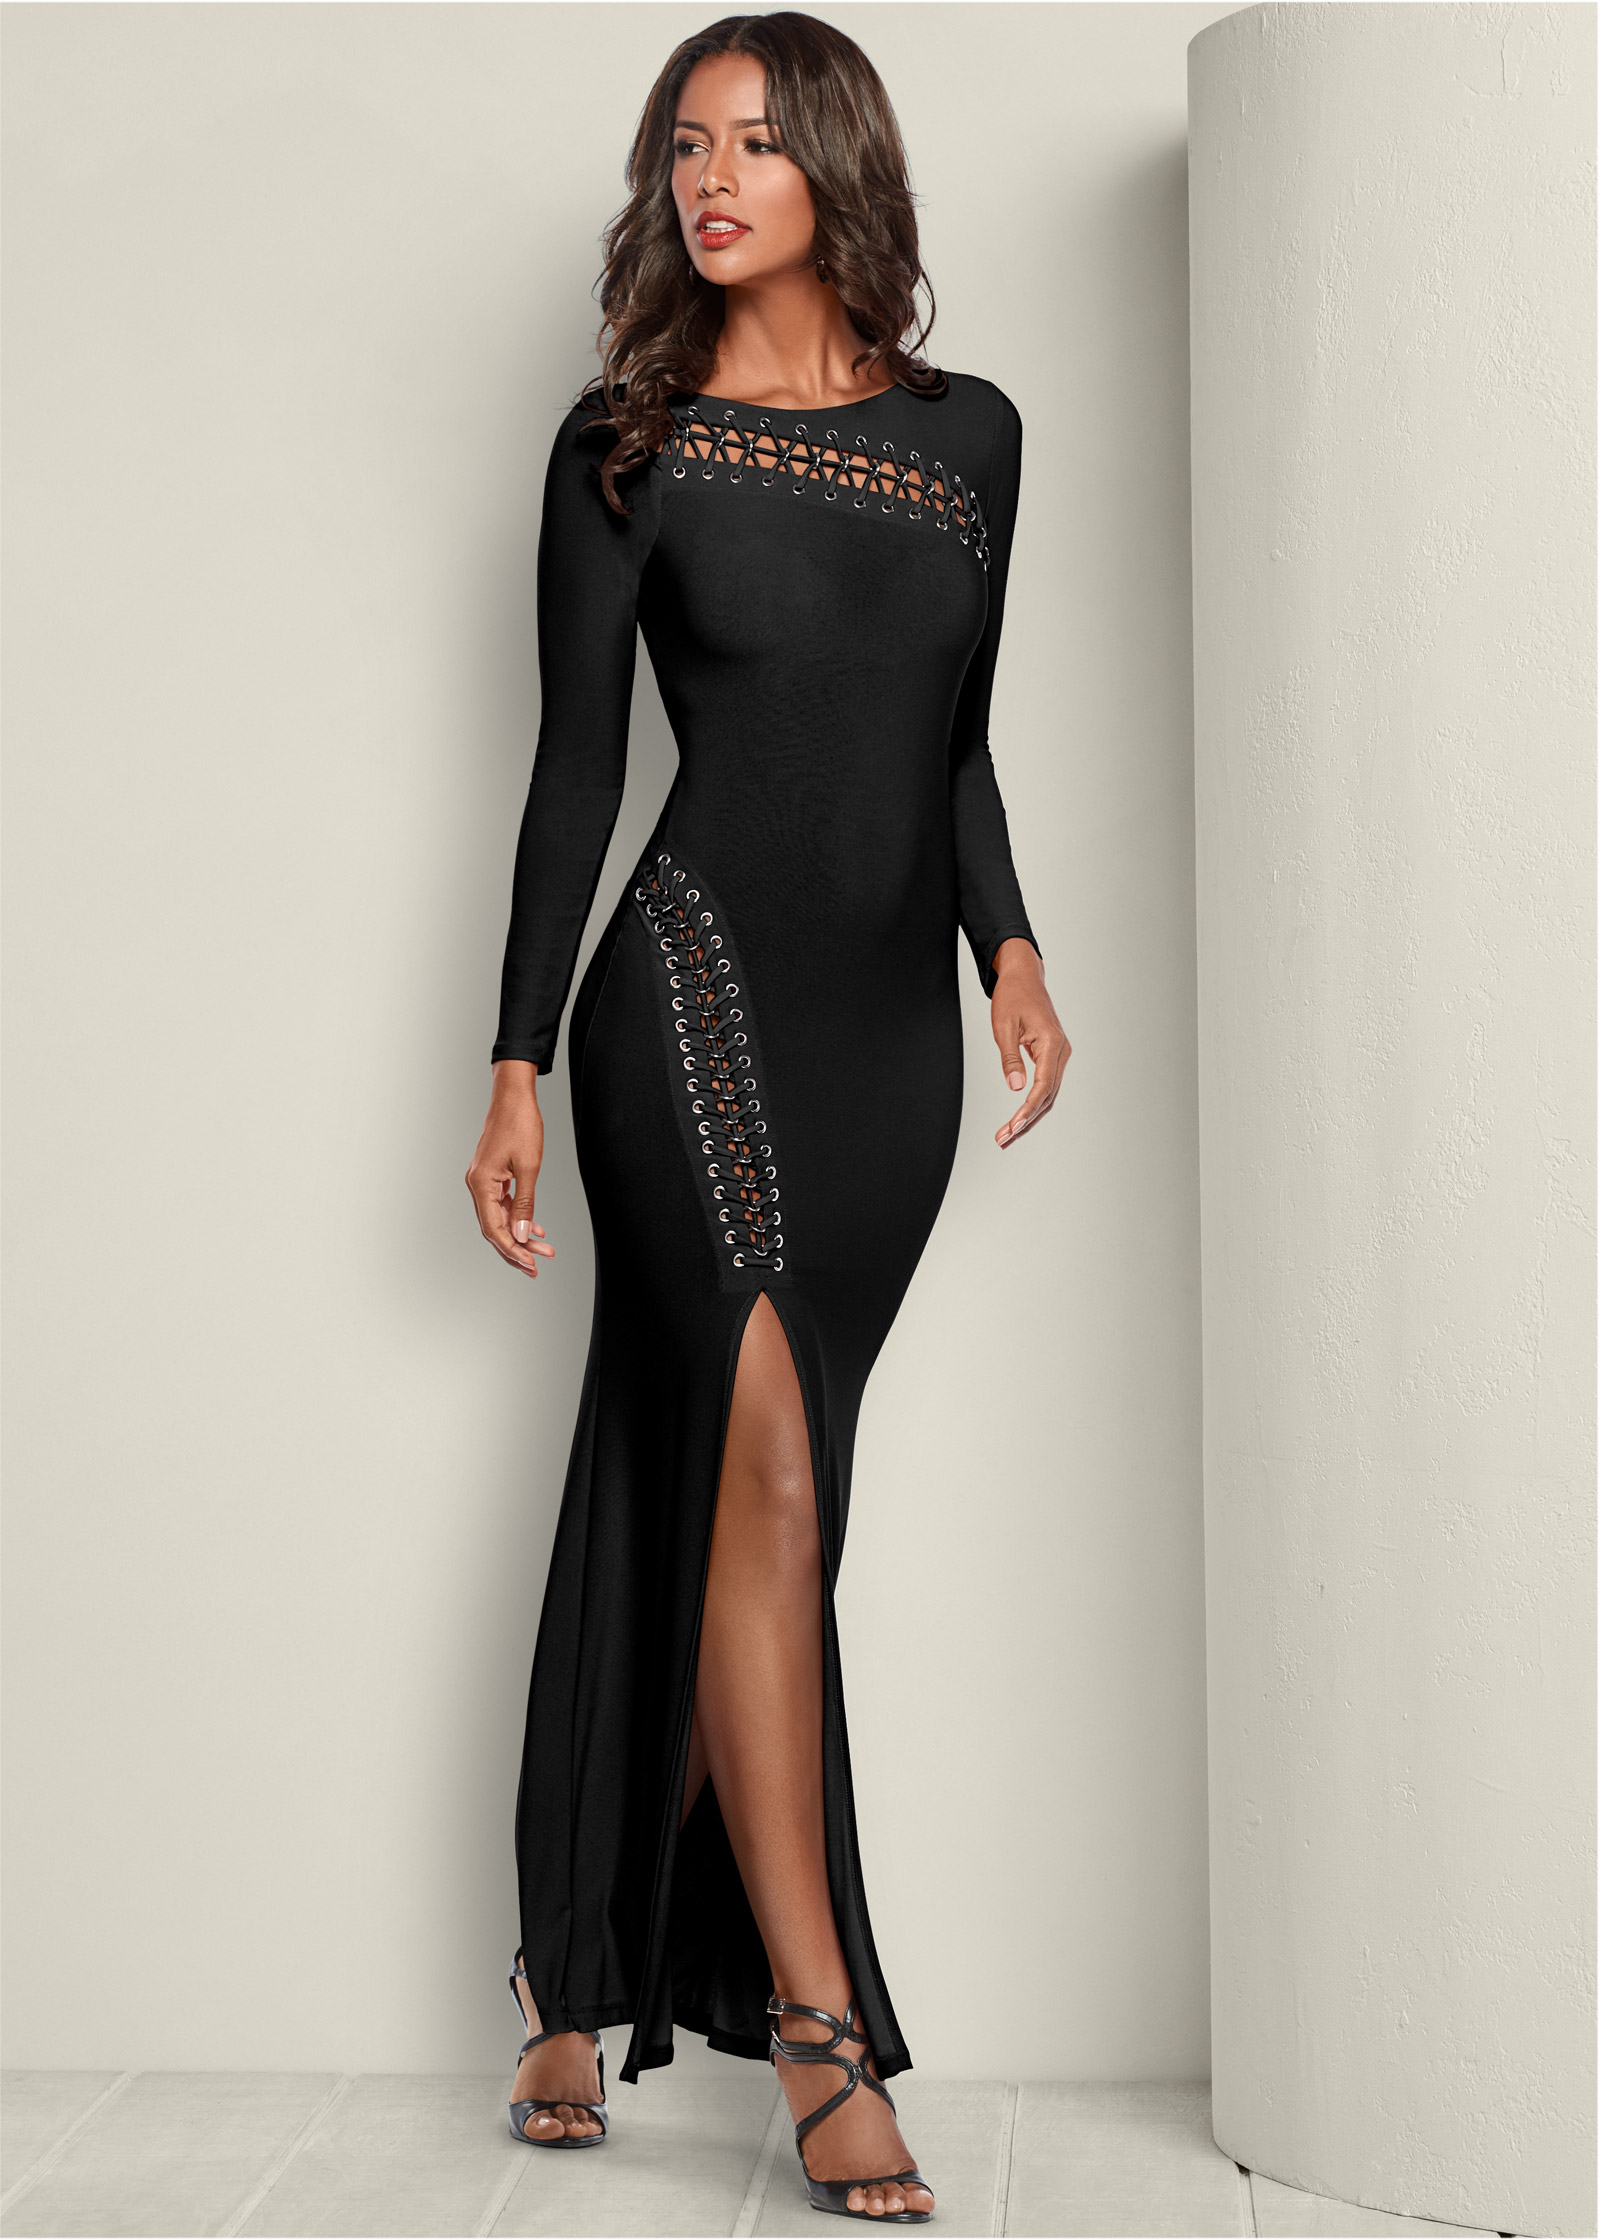 Formal Dresses & Long Evening Gowns for Women